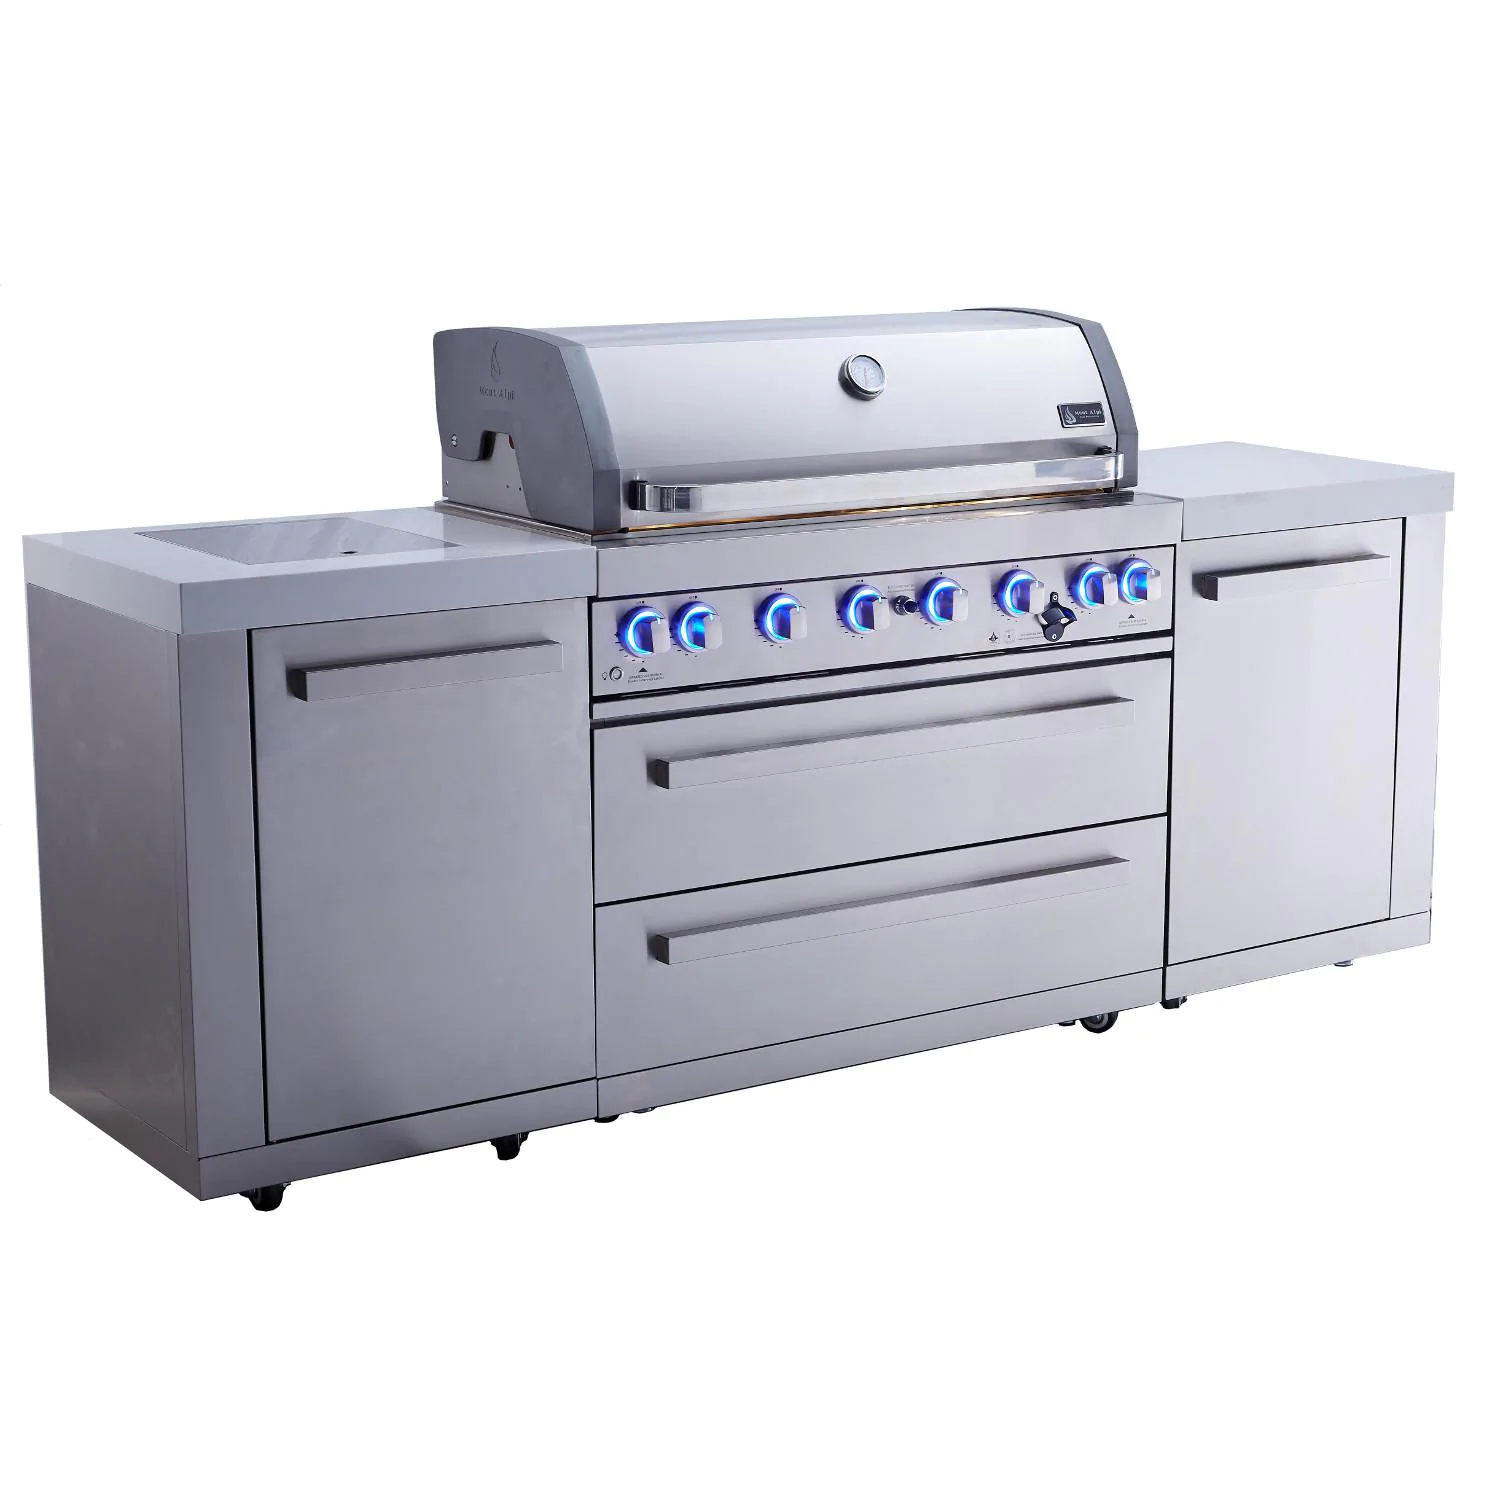 Mont Alpi 805 Propane Gas Island Grill W/ Infrared Side Burner - Stainless Steel - MAi805